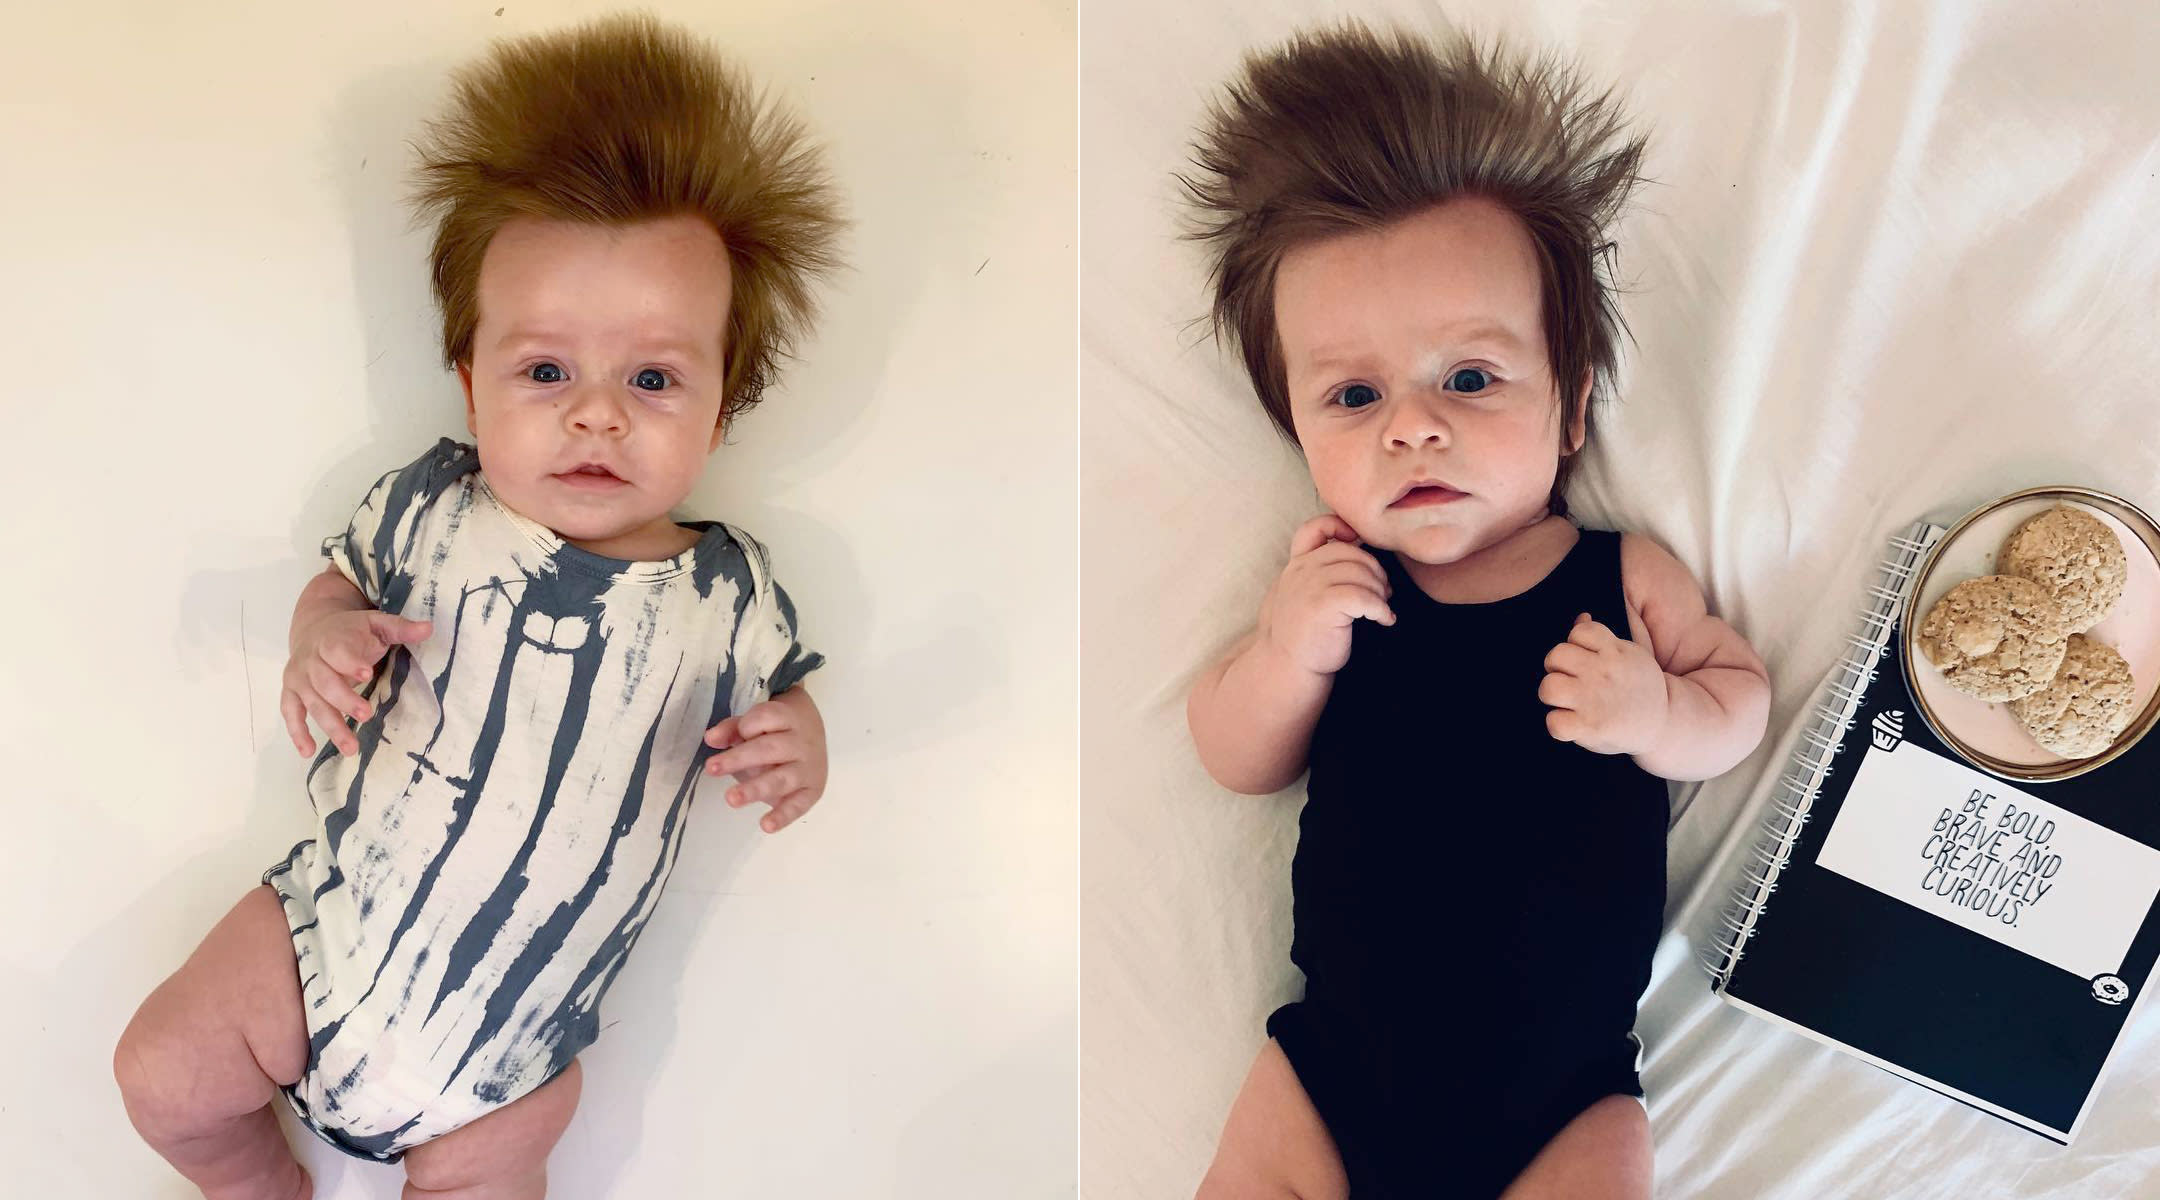 baby from australia becomes internet famous for his adorable hair